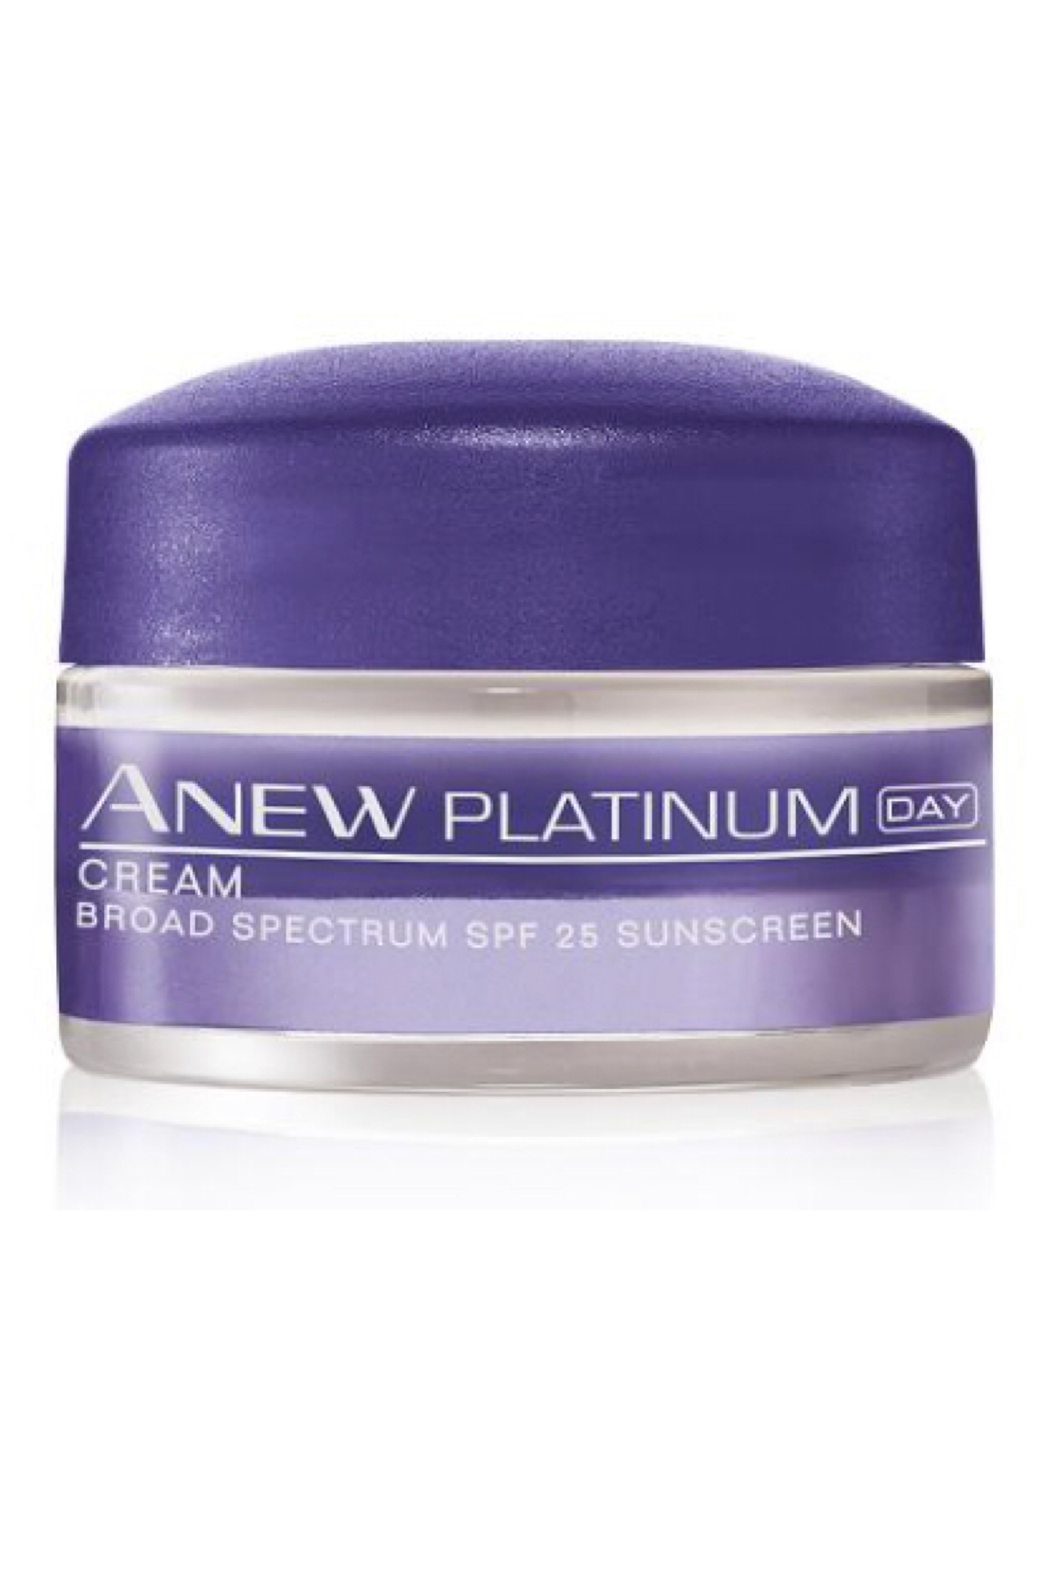 Anew Platinum Day Cream Travel Size Broad Spectrum SPF 25